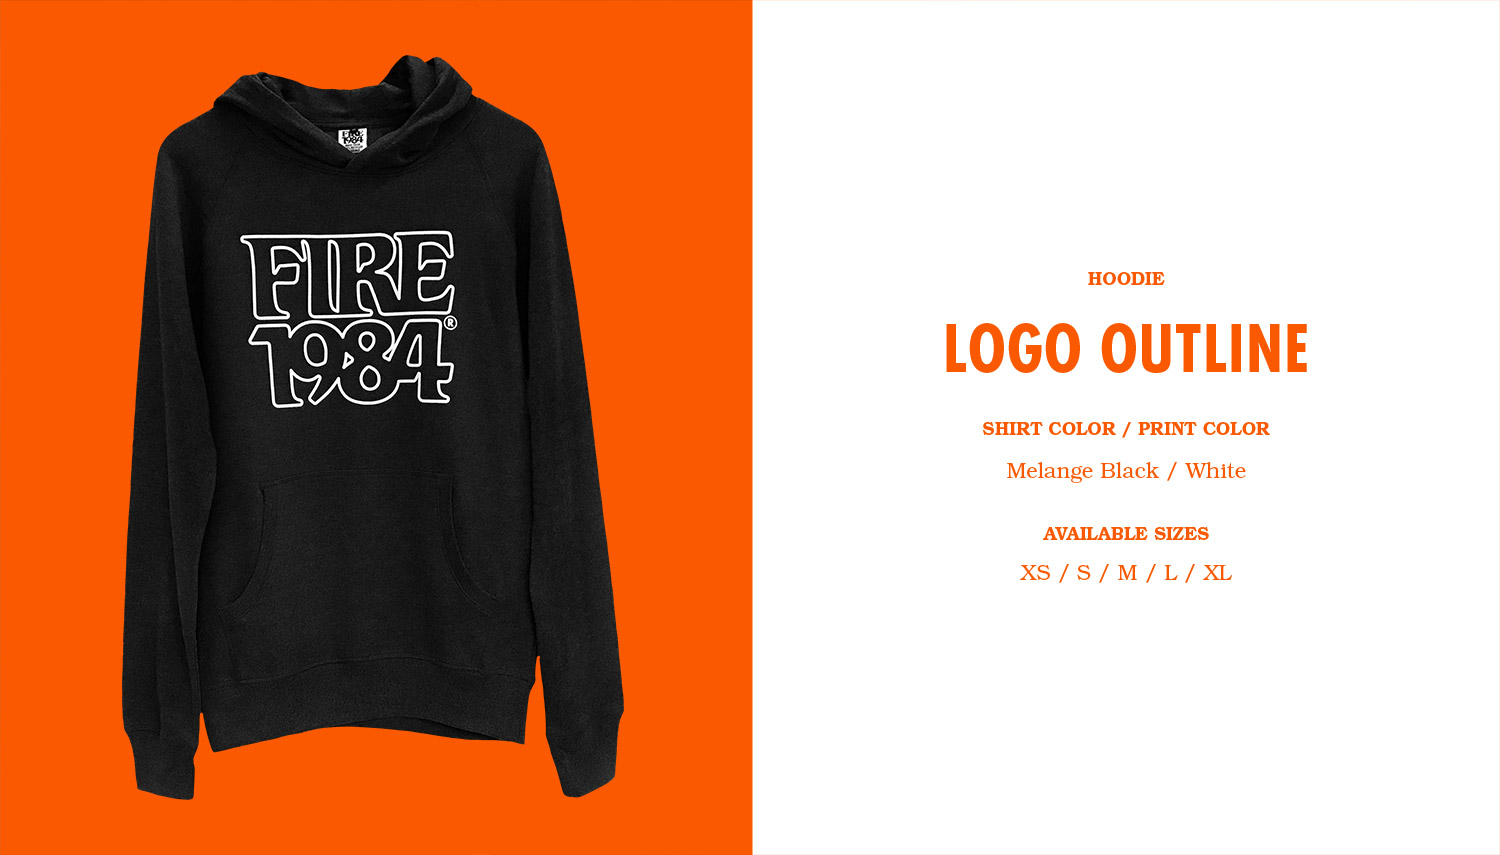 Fire1984_no20172_hoodie_logo_outline_mb_4